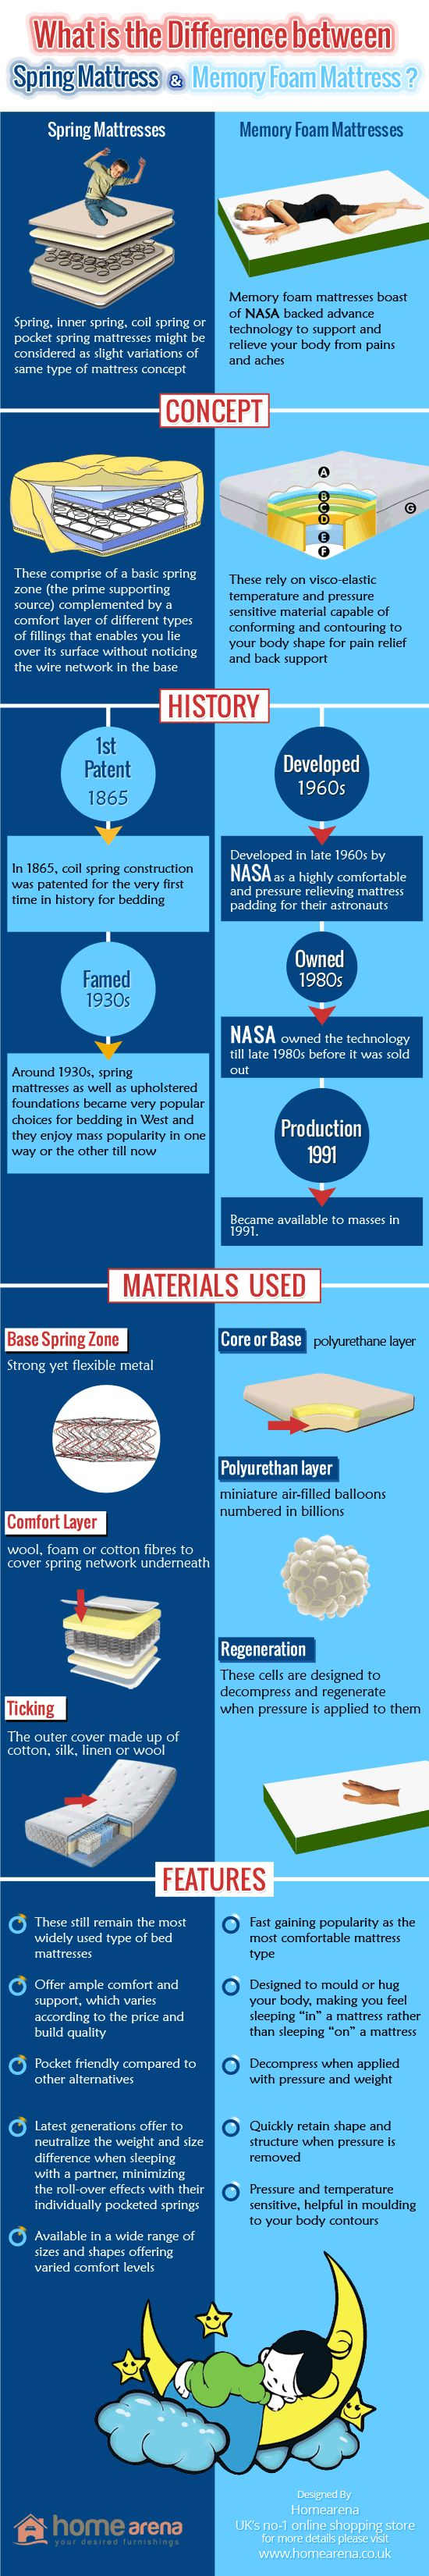 Difference between spring based mattress and memory foam #mattress. #MattressQuality